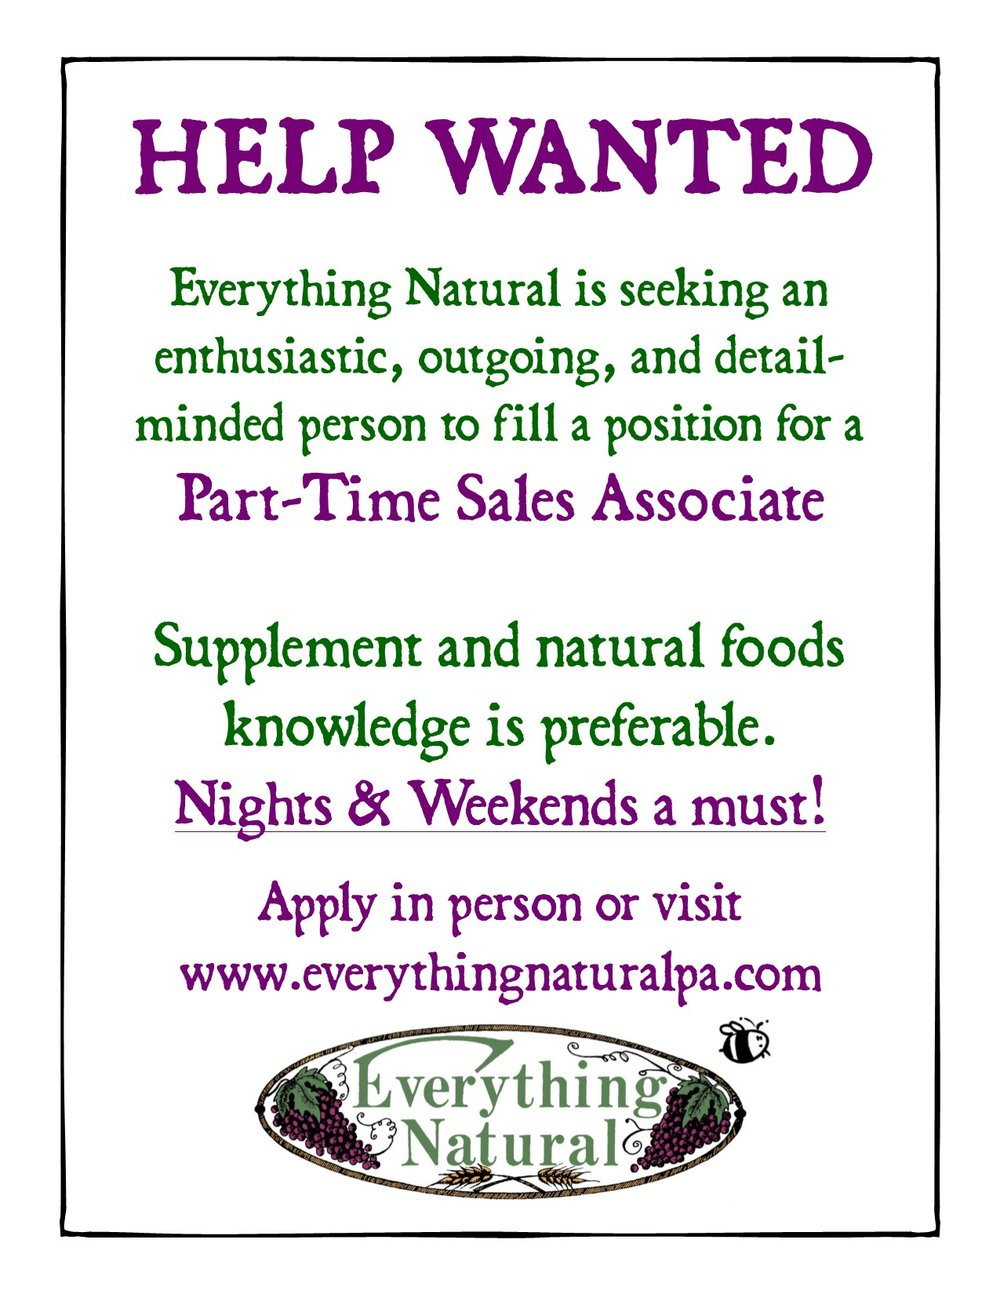 Help Wanted (Part-Time Nights & Weekends)- updated.jpg